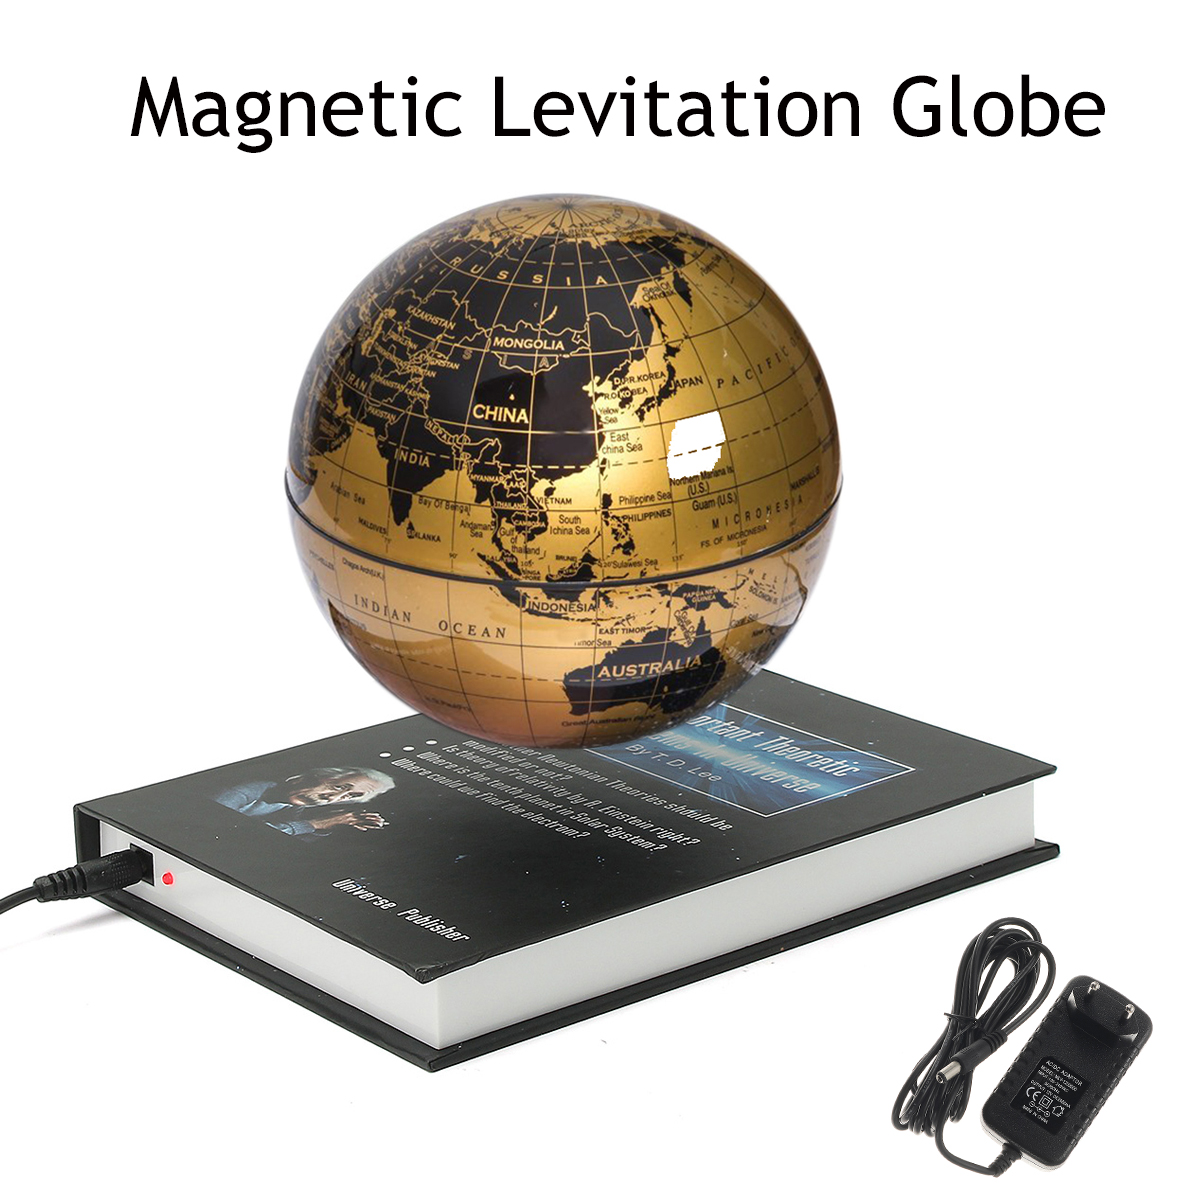 "6"" inches Rotating Magnetic Levitation Globe World Globe Floating Levitating Earth Gift Hobbies Learning Toys Tool Geographical Knowledge With Bookcase Xmas Gift"